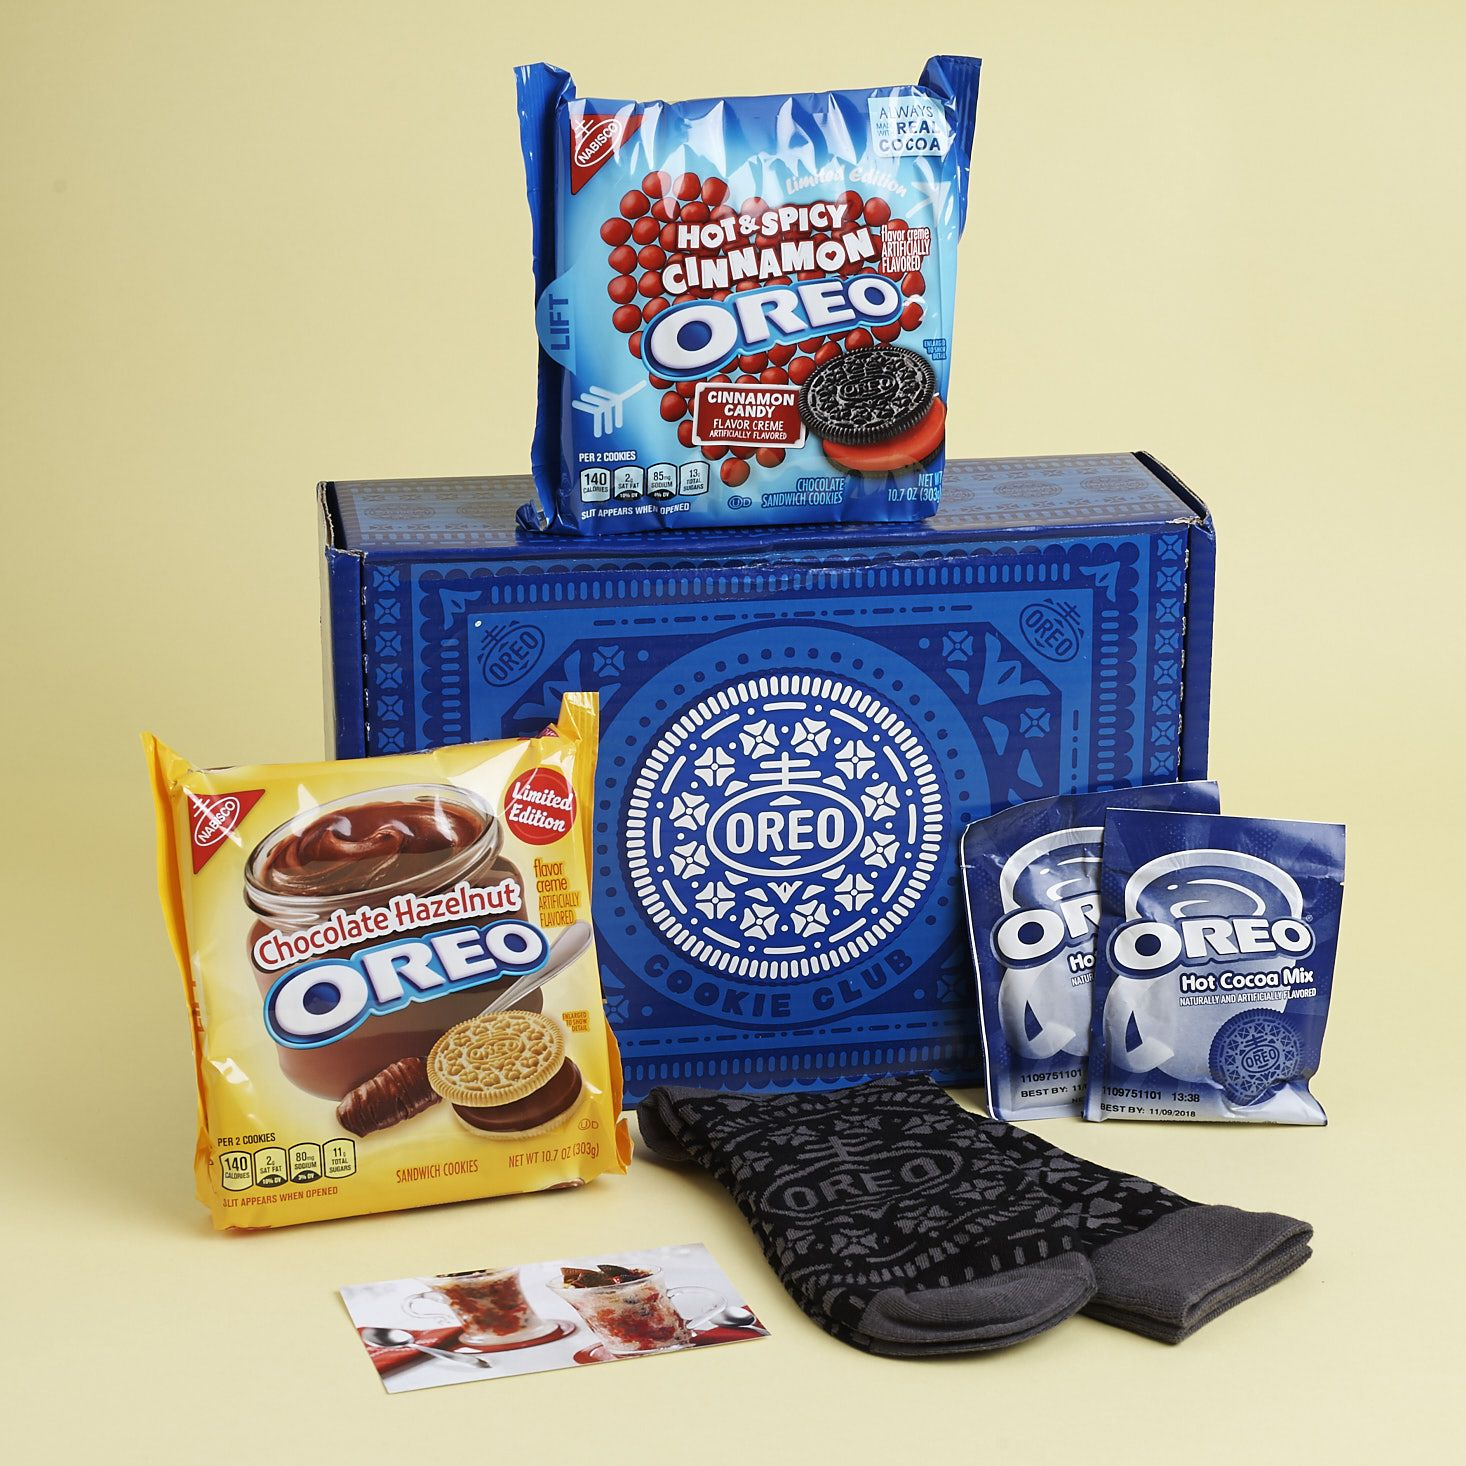 Oreo Subscription Box $60 For 3 Months Gift Idea For